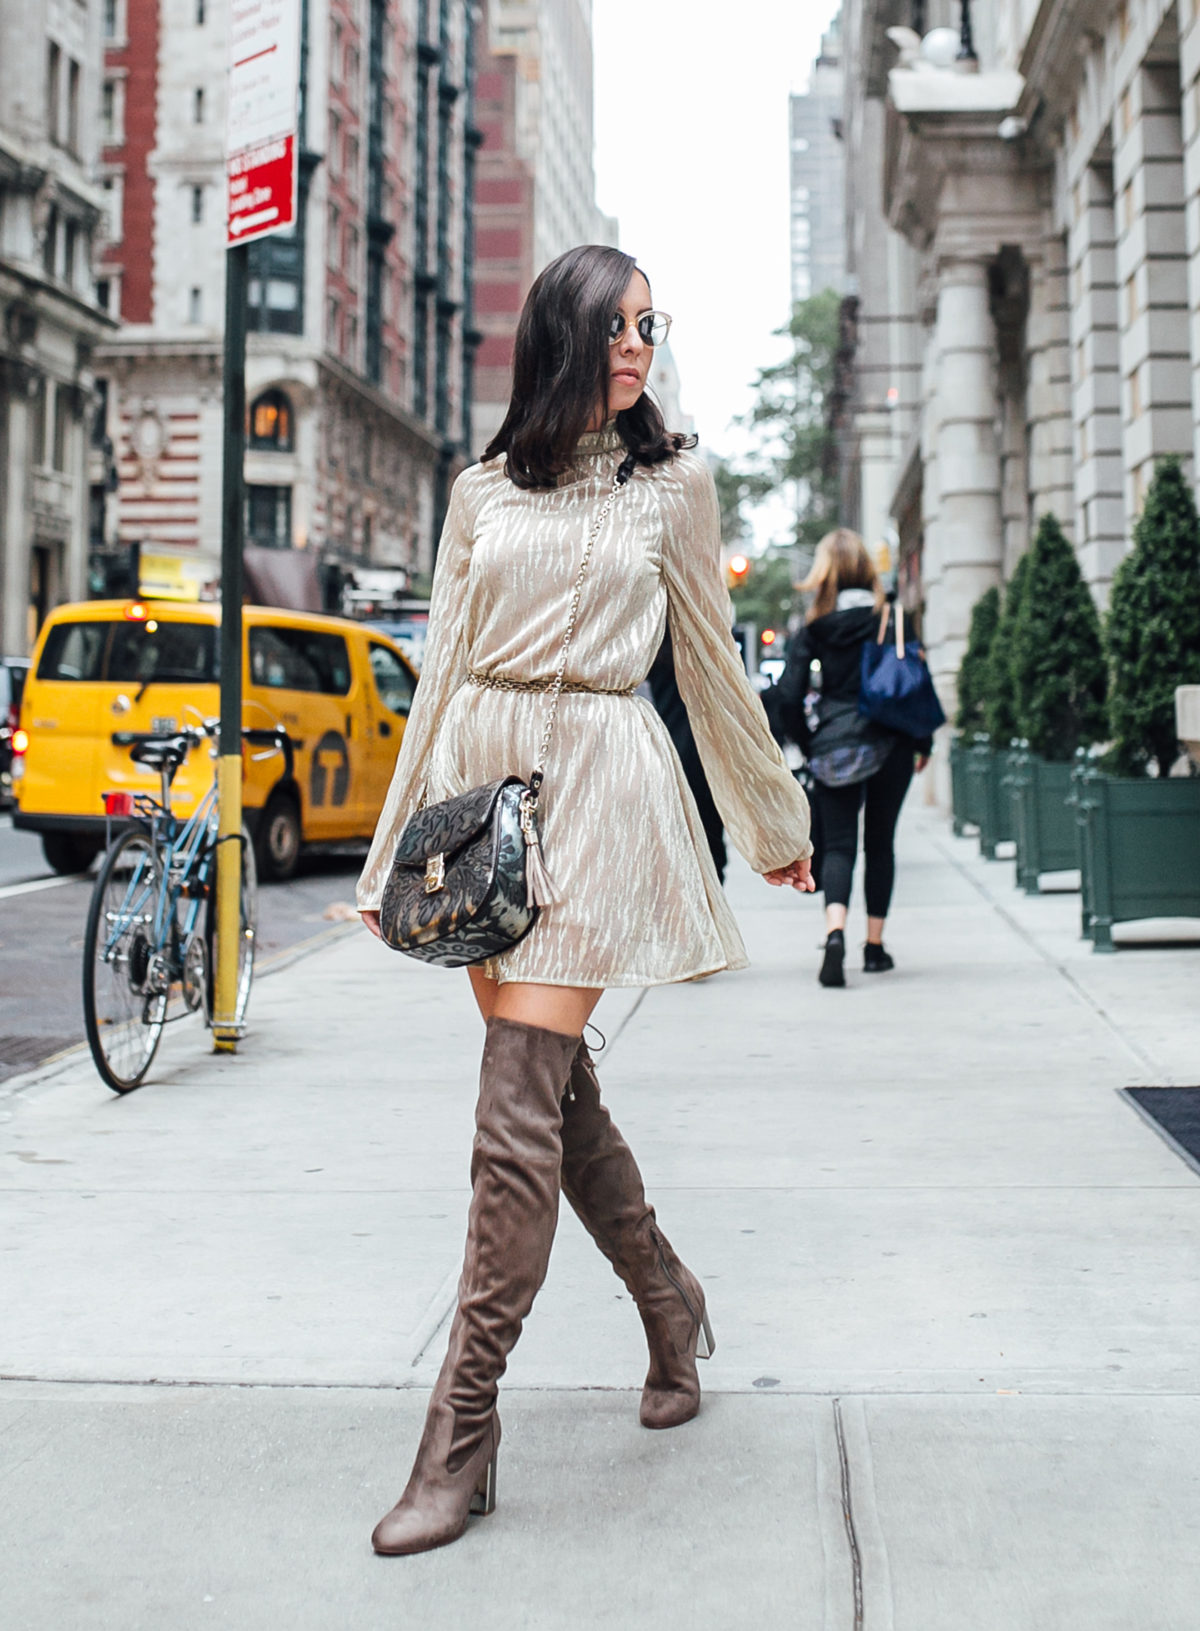 Sydne-Style-shows-how-to-wear-over-the-knee-boots-for-fall-at-new-york-fashion-week-1200x1631.jpg